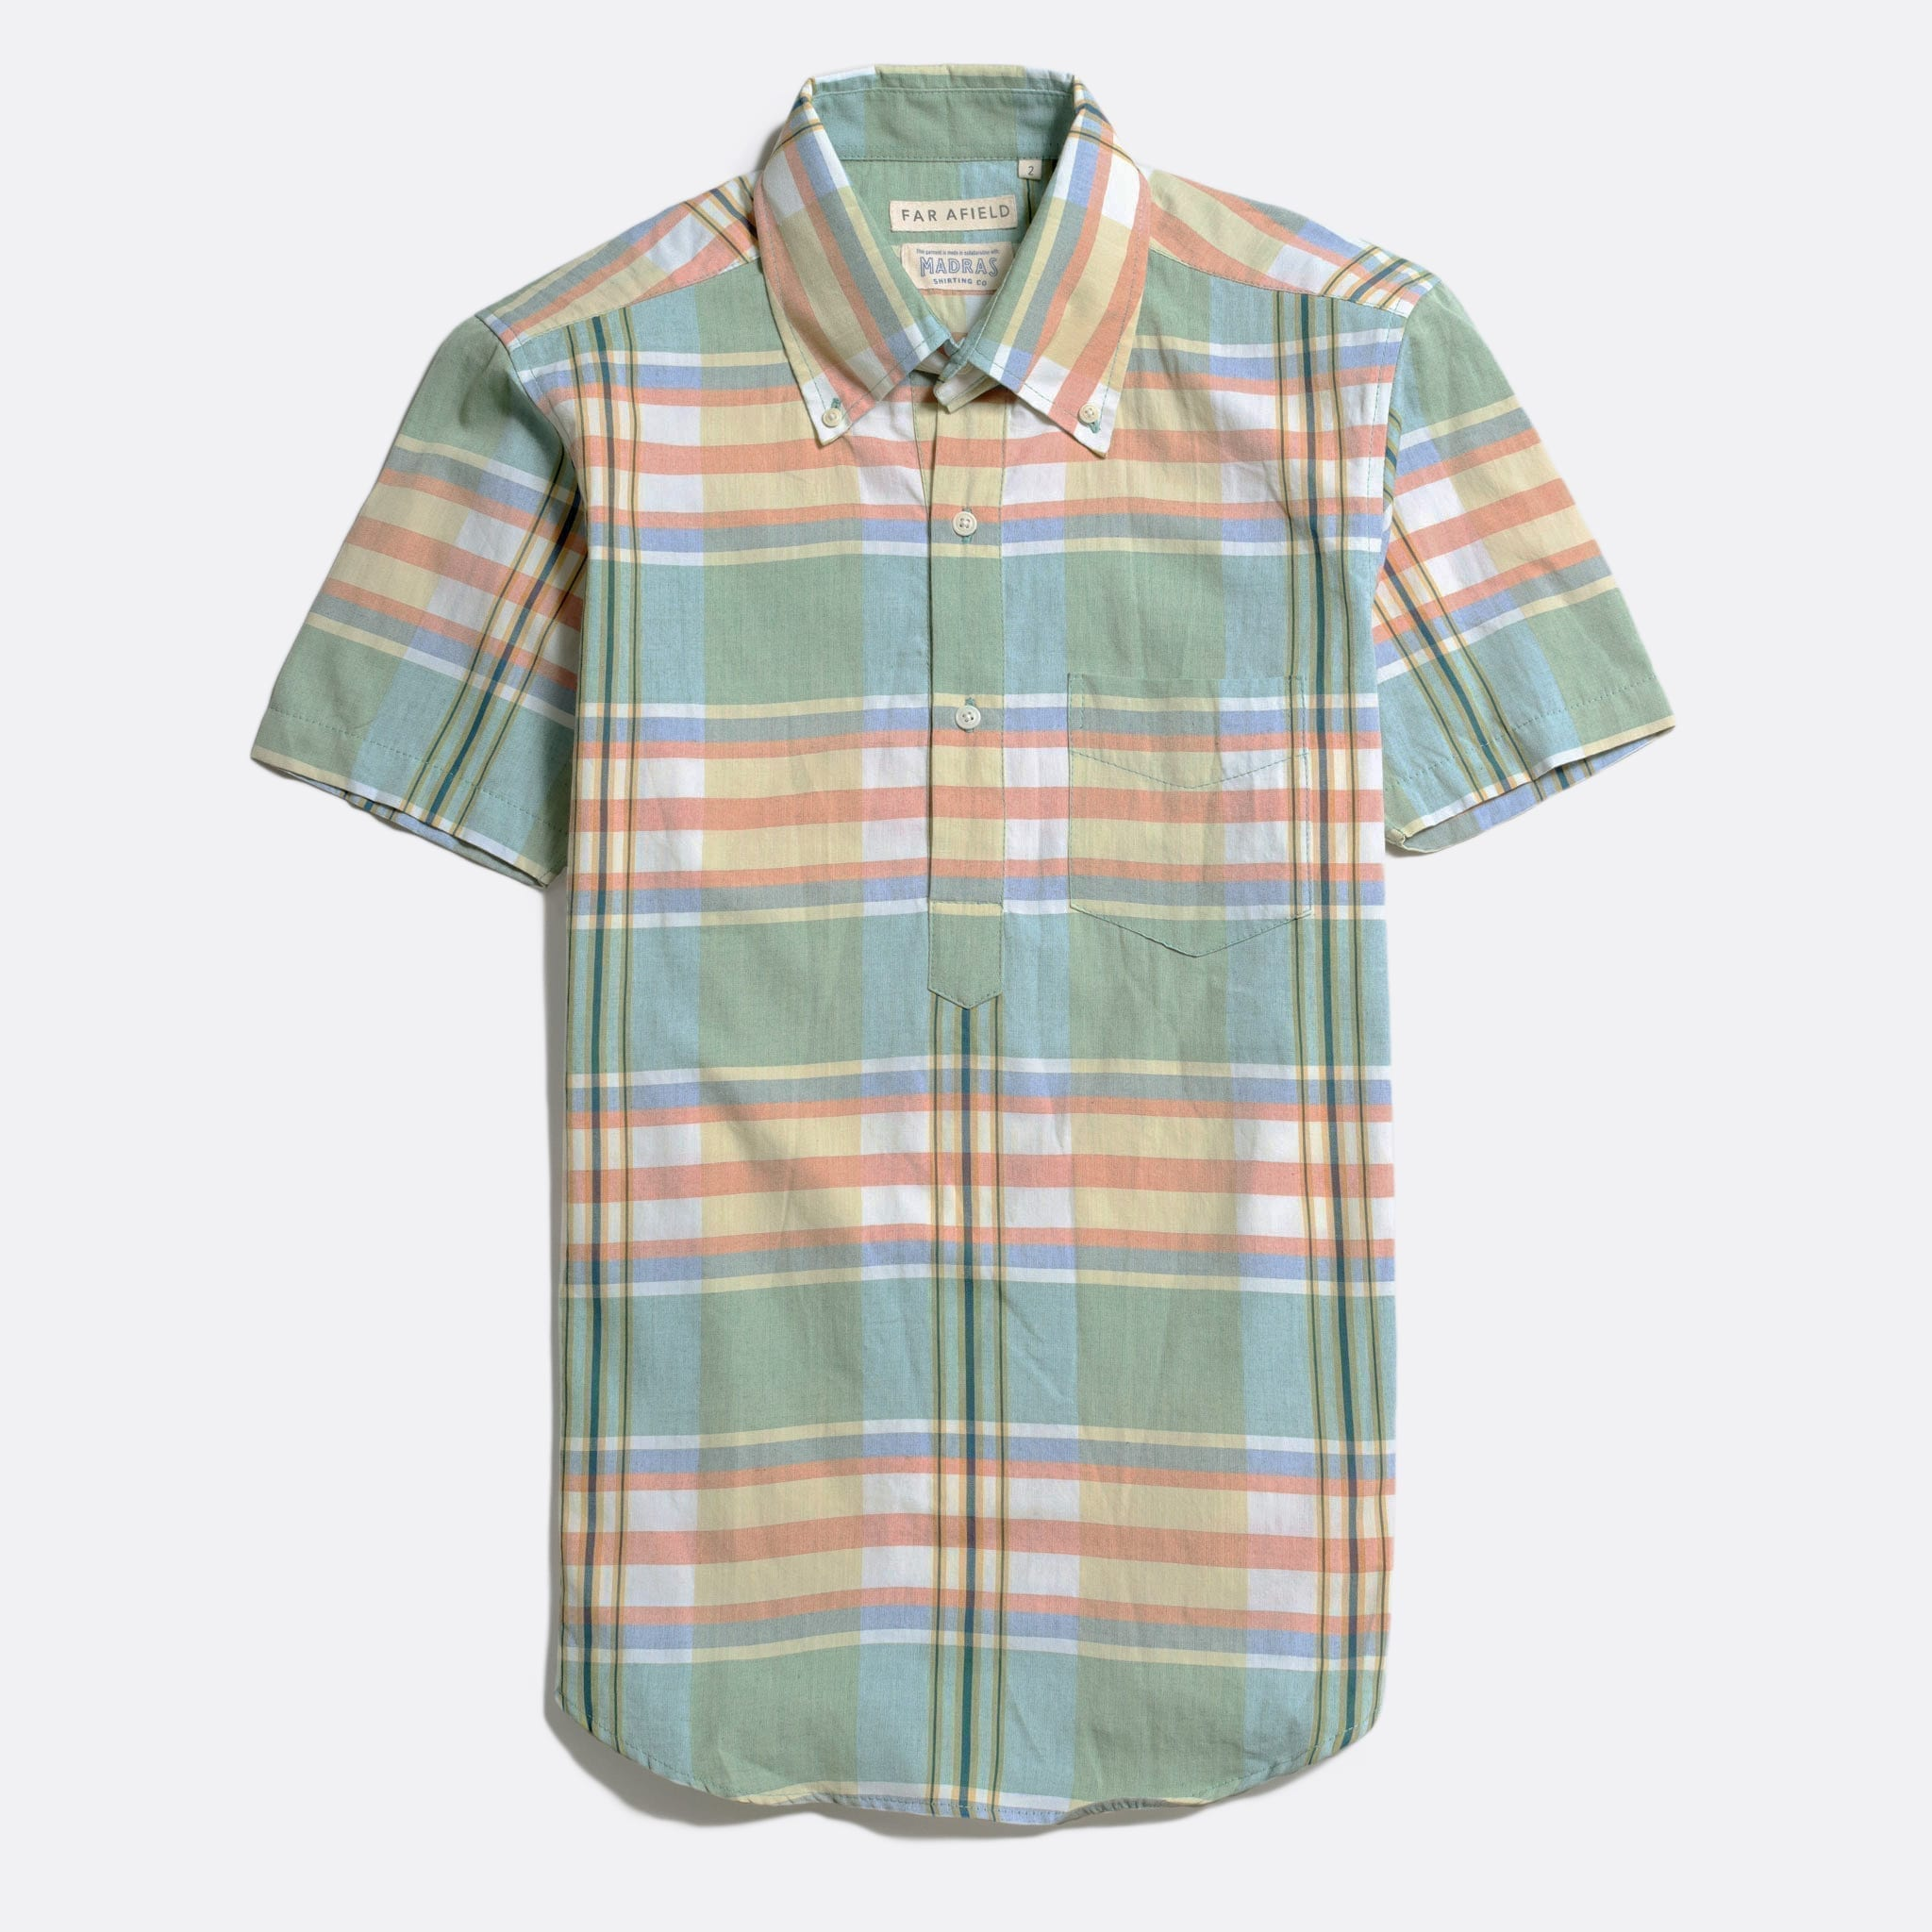 Far Afield x MSCo – Ivy Pop-Over Short Sleeve Shirt a Doheny Check BCI Cotton Fabric Mid Century Inspired